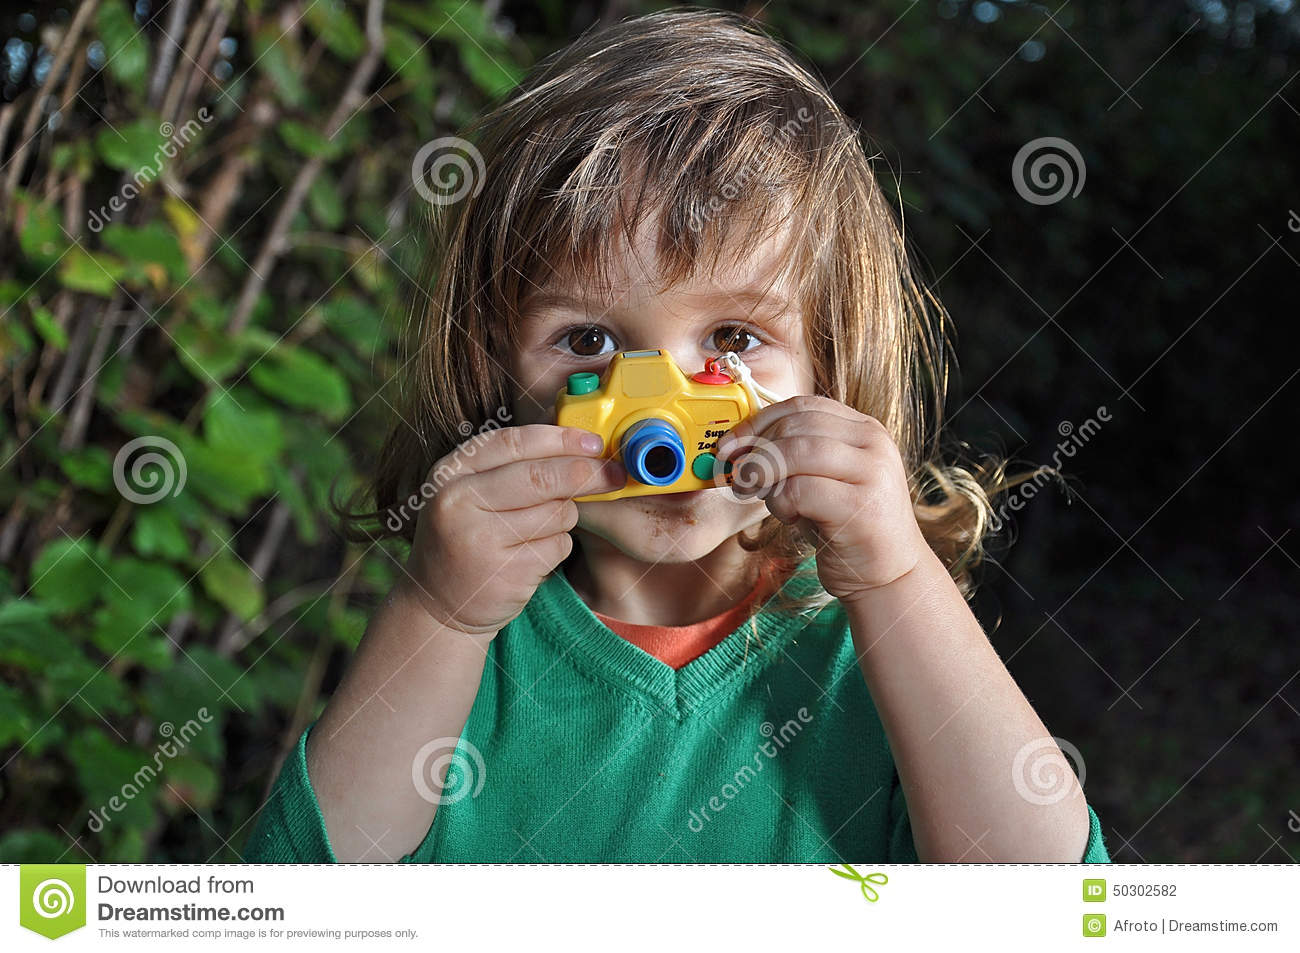 Little boy with toy camera